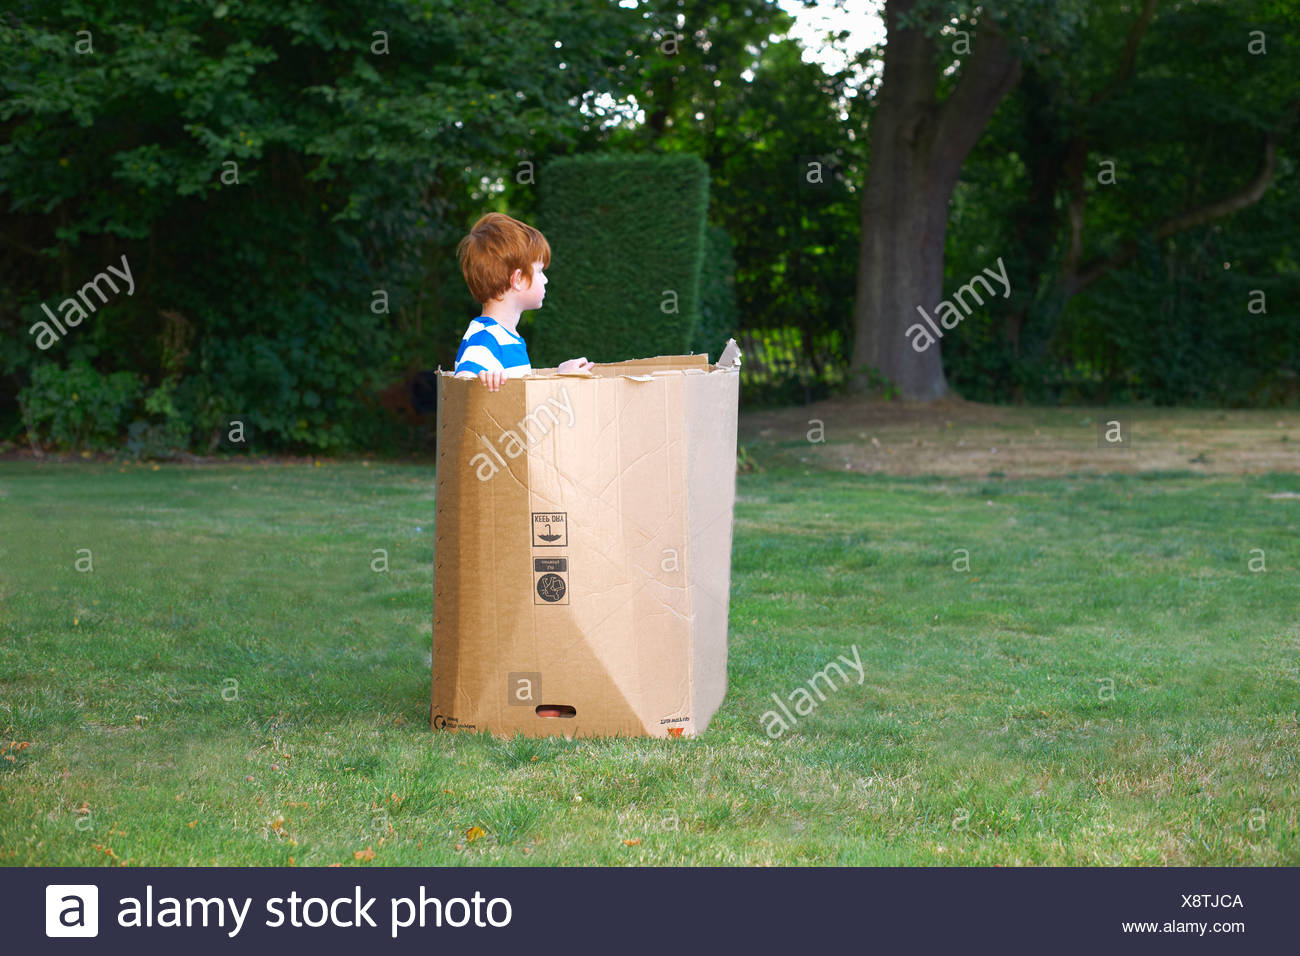 Young boy watching from cardboard box in garden Stock Photo